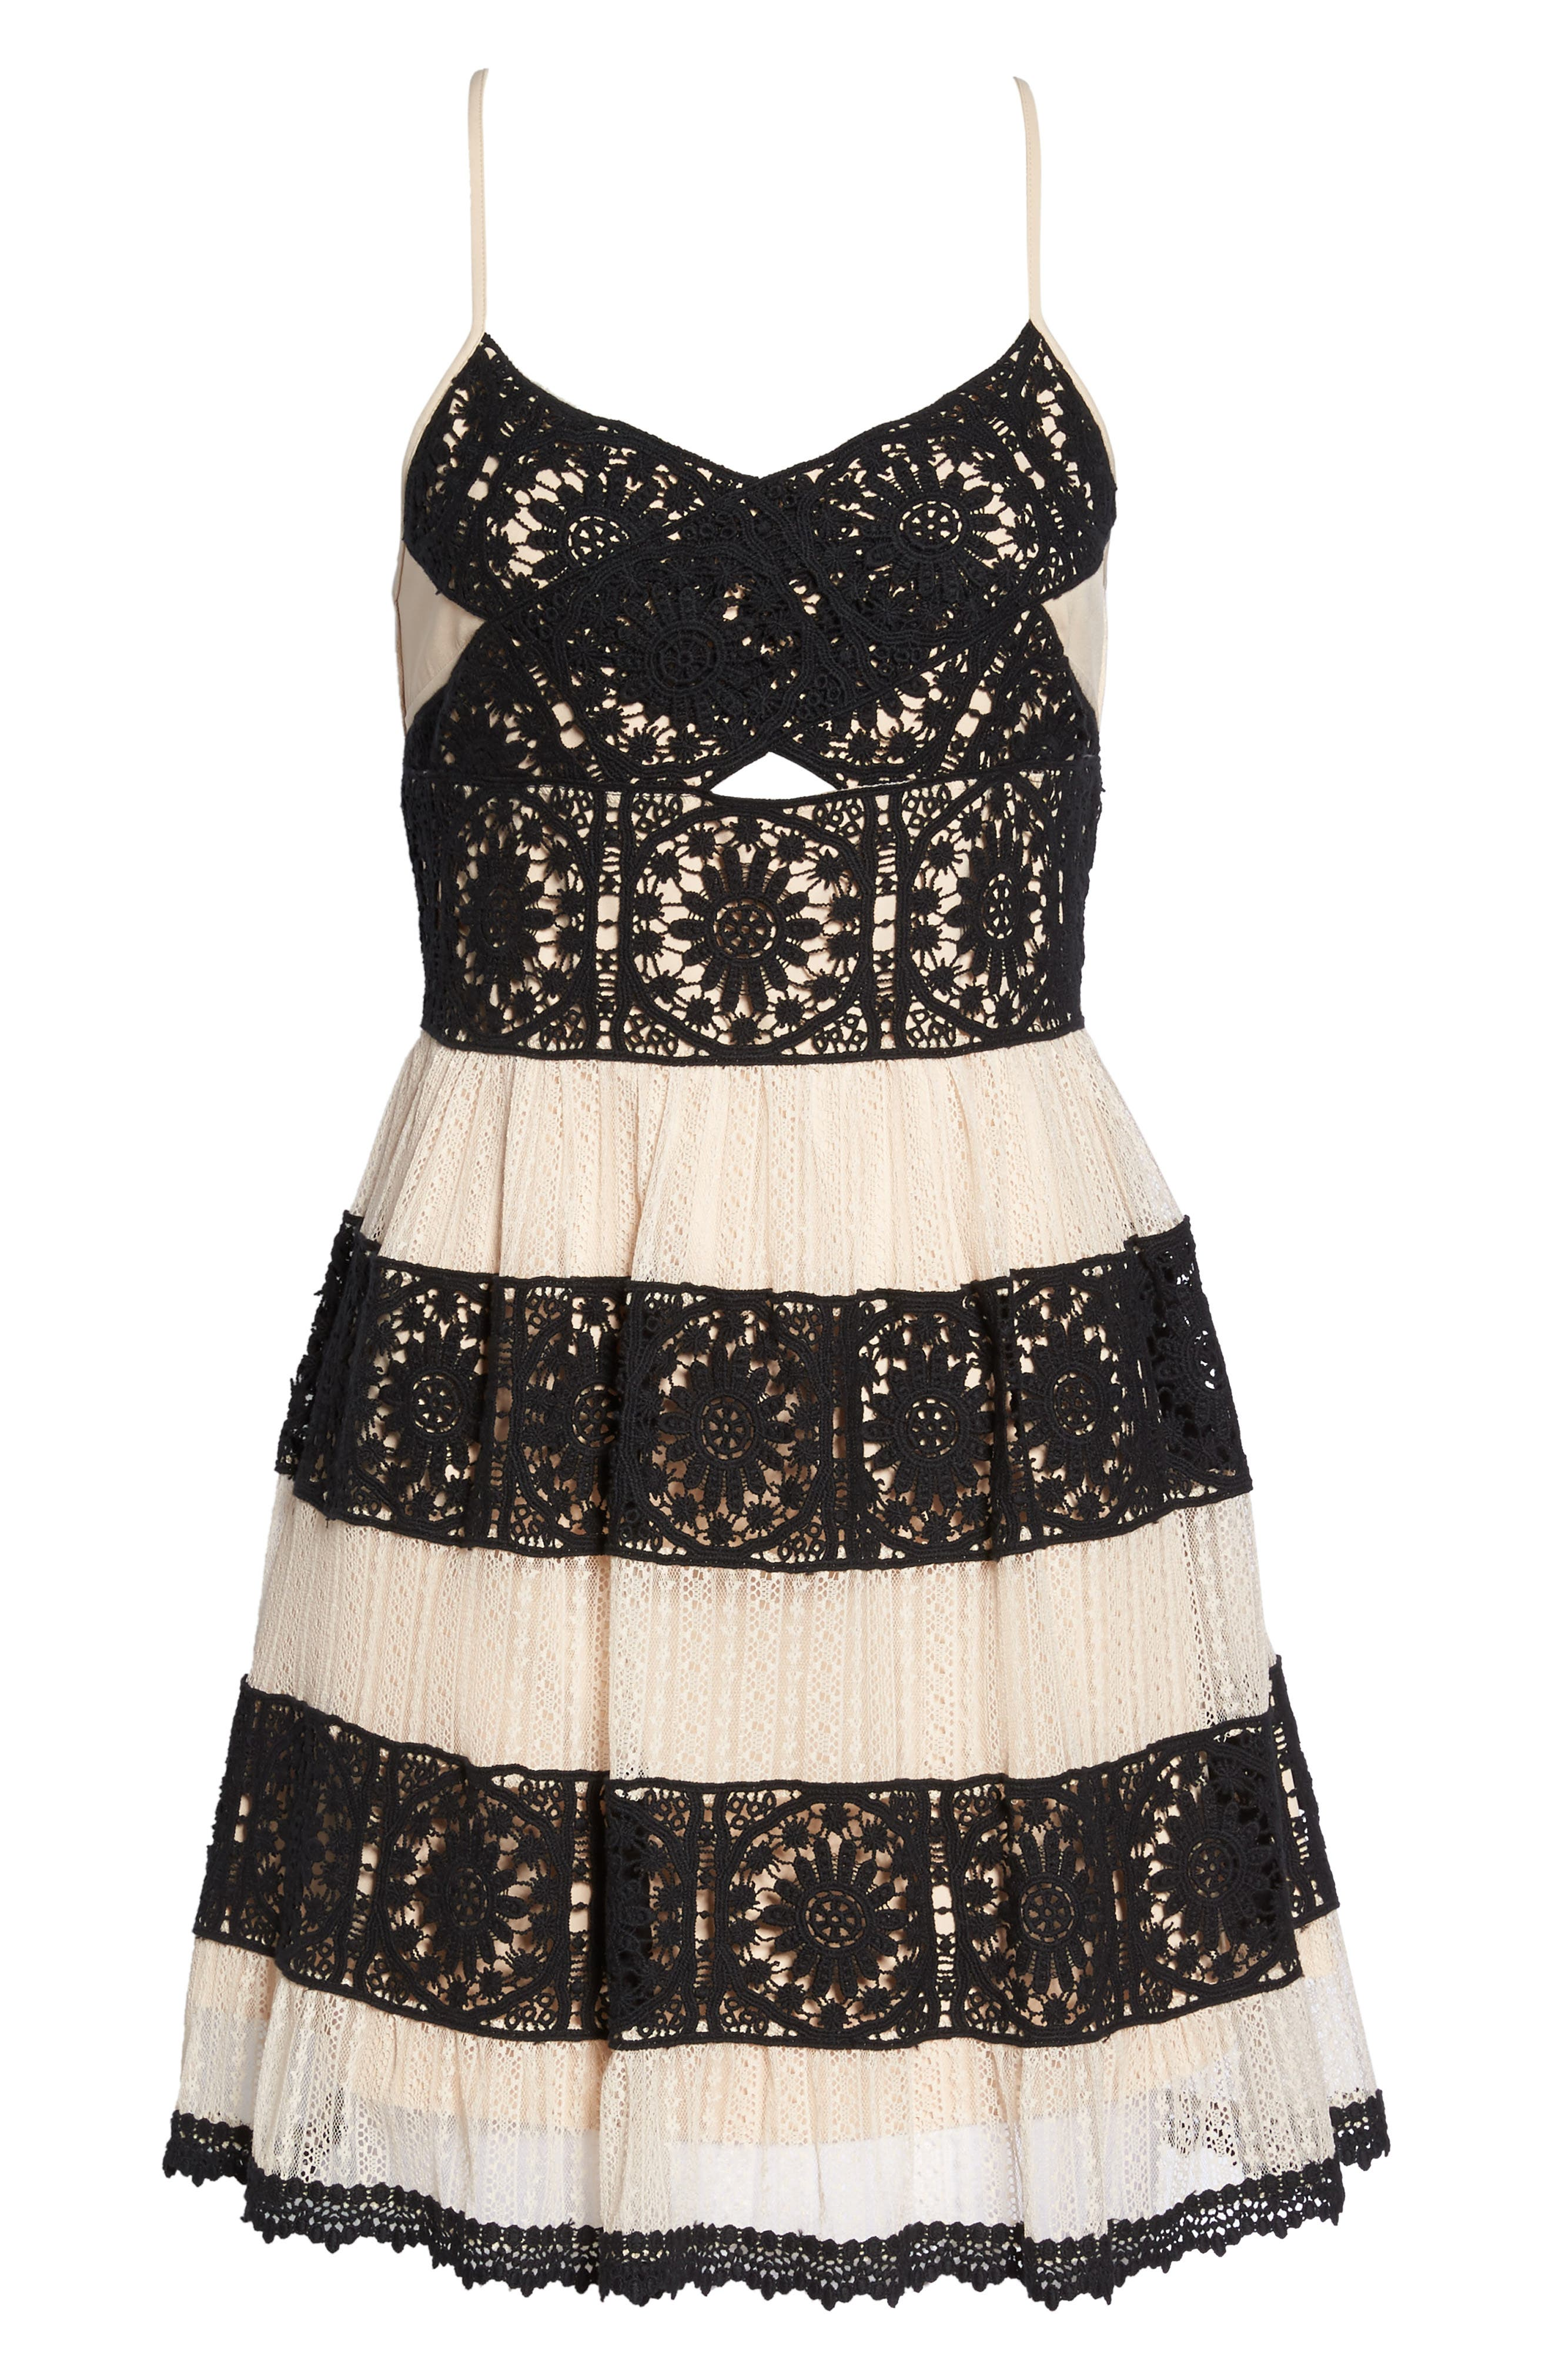 Ophelia Two-Tone Lace Fit & Flare Dress,                             Alternate thumbnail 6, color,                             Black/ Nude